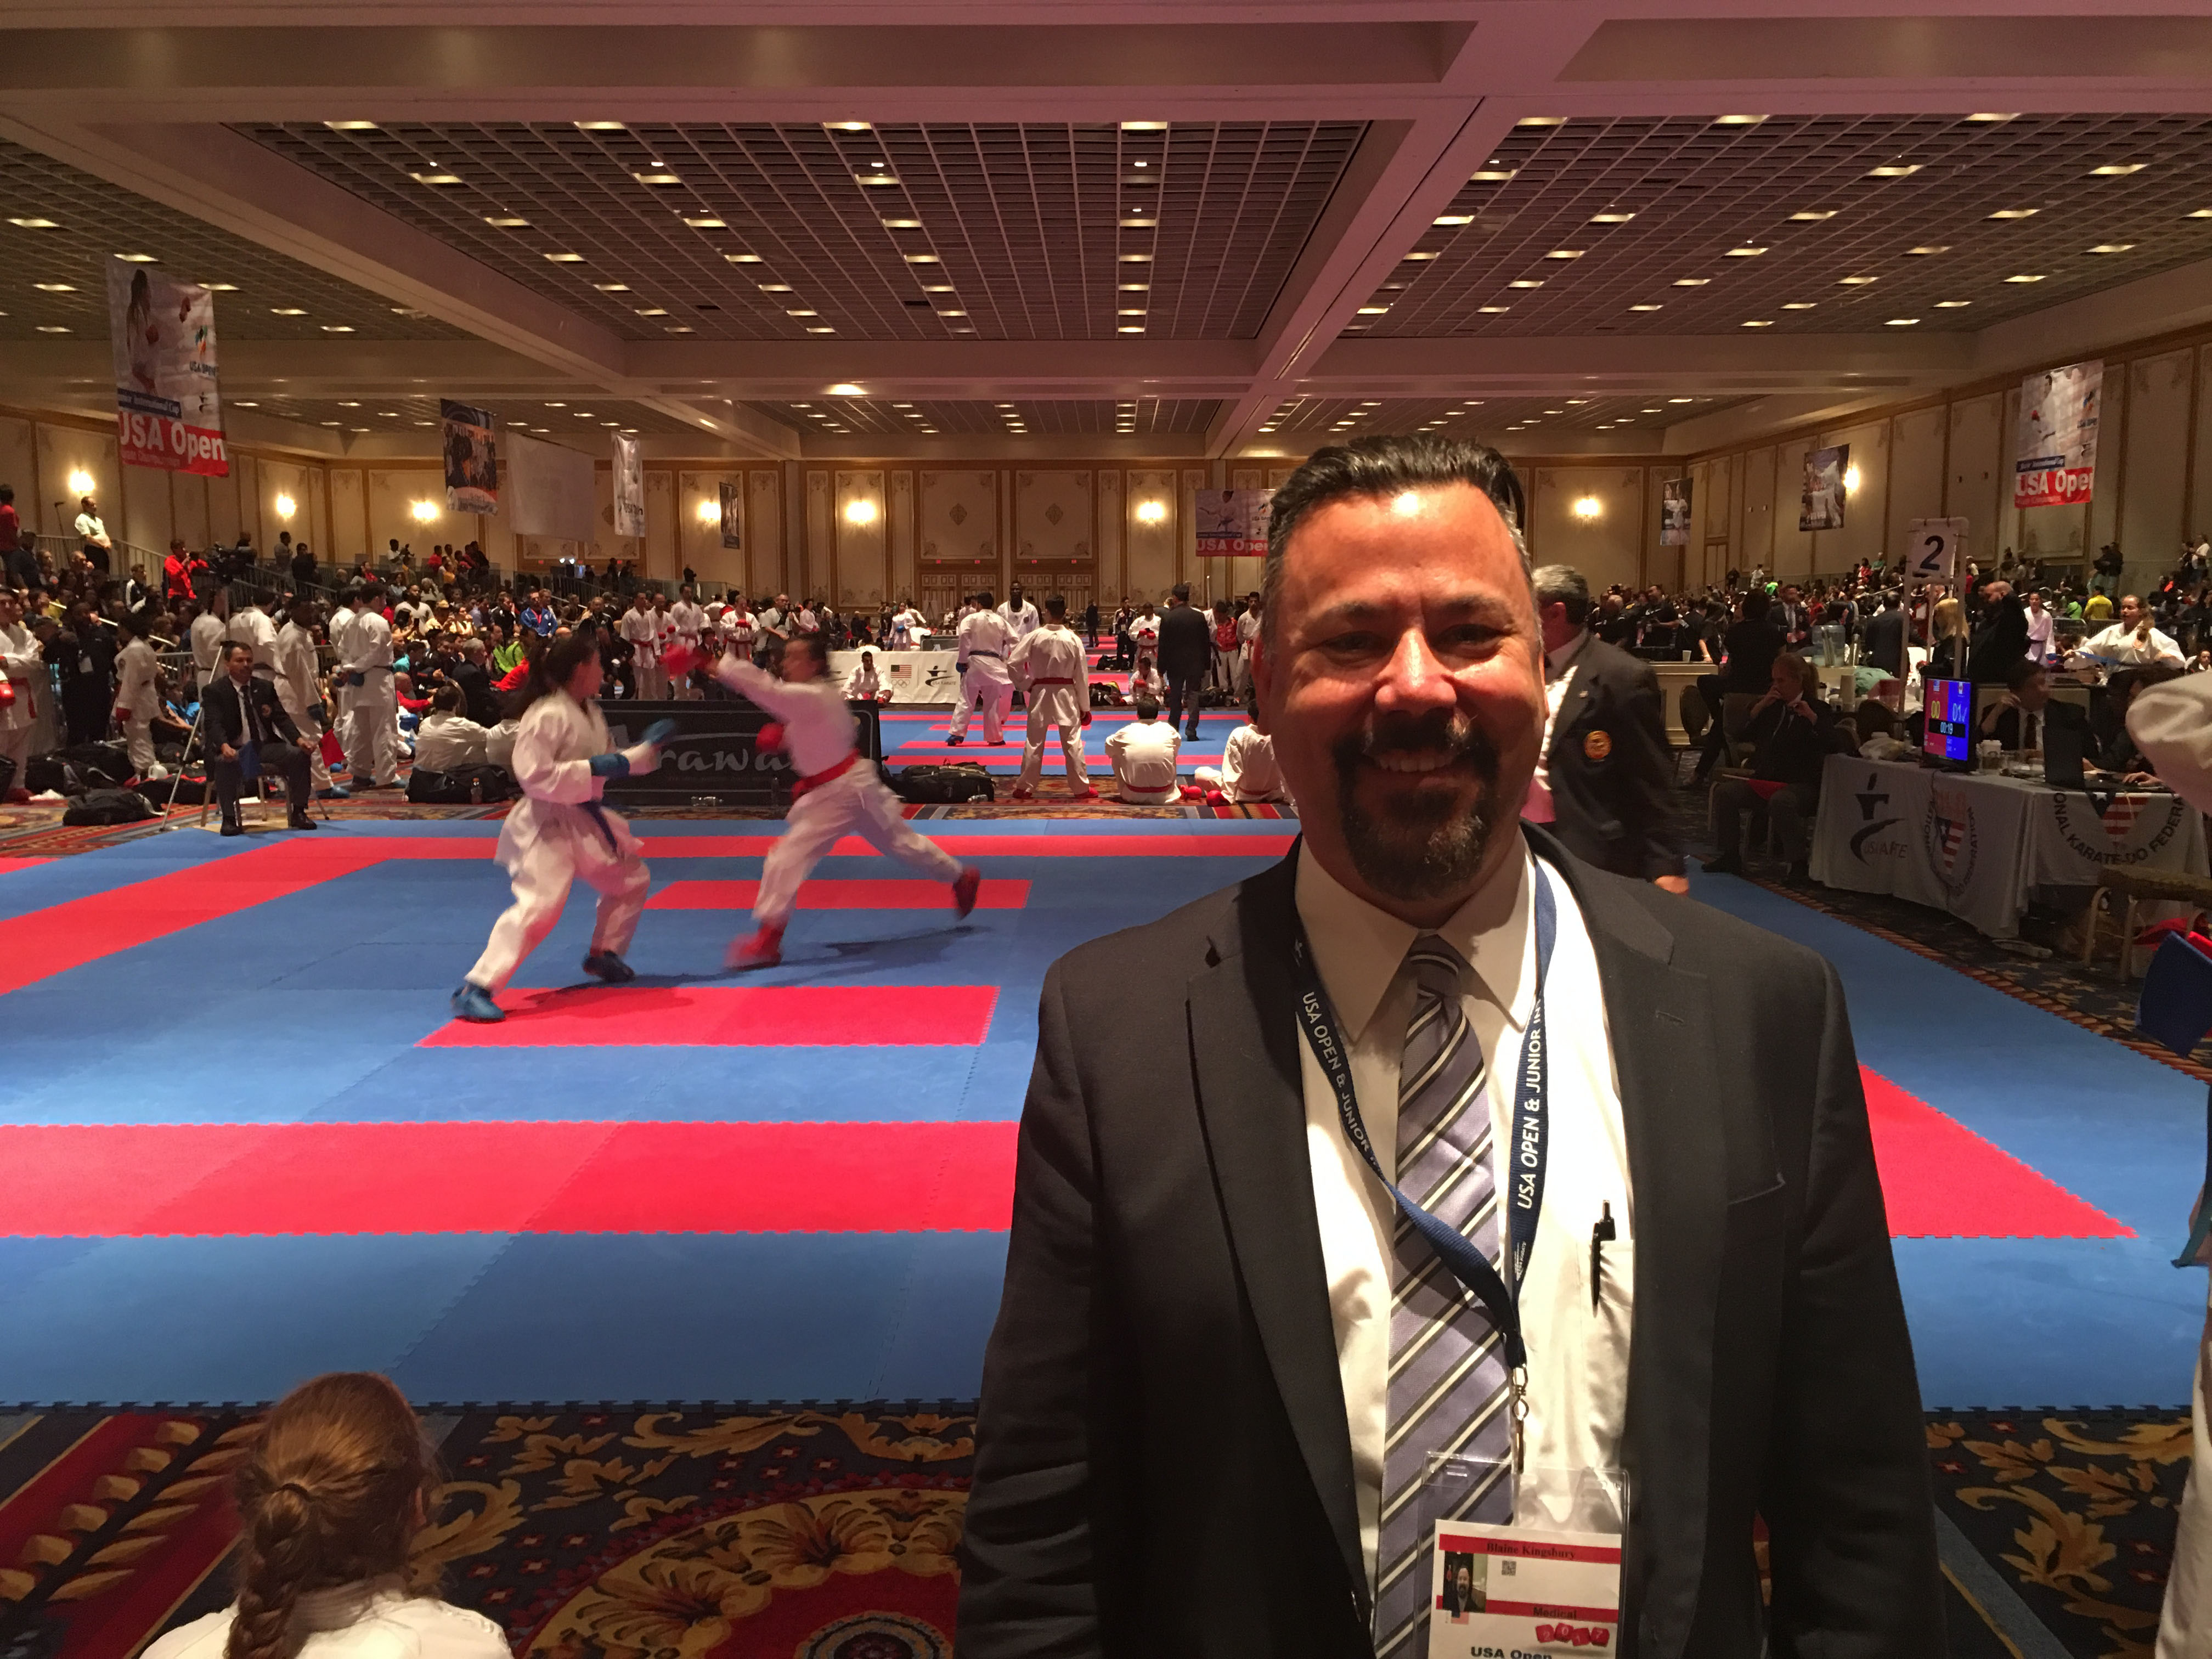 Dr. Kingsbury at the 2017 US Karate Open